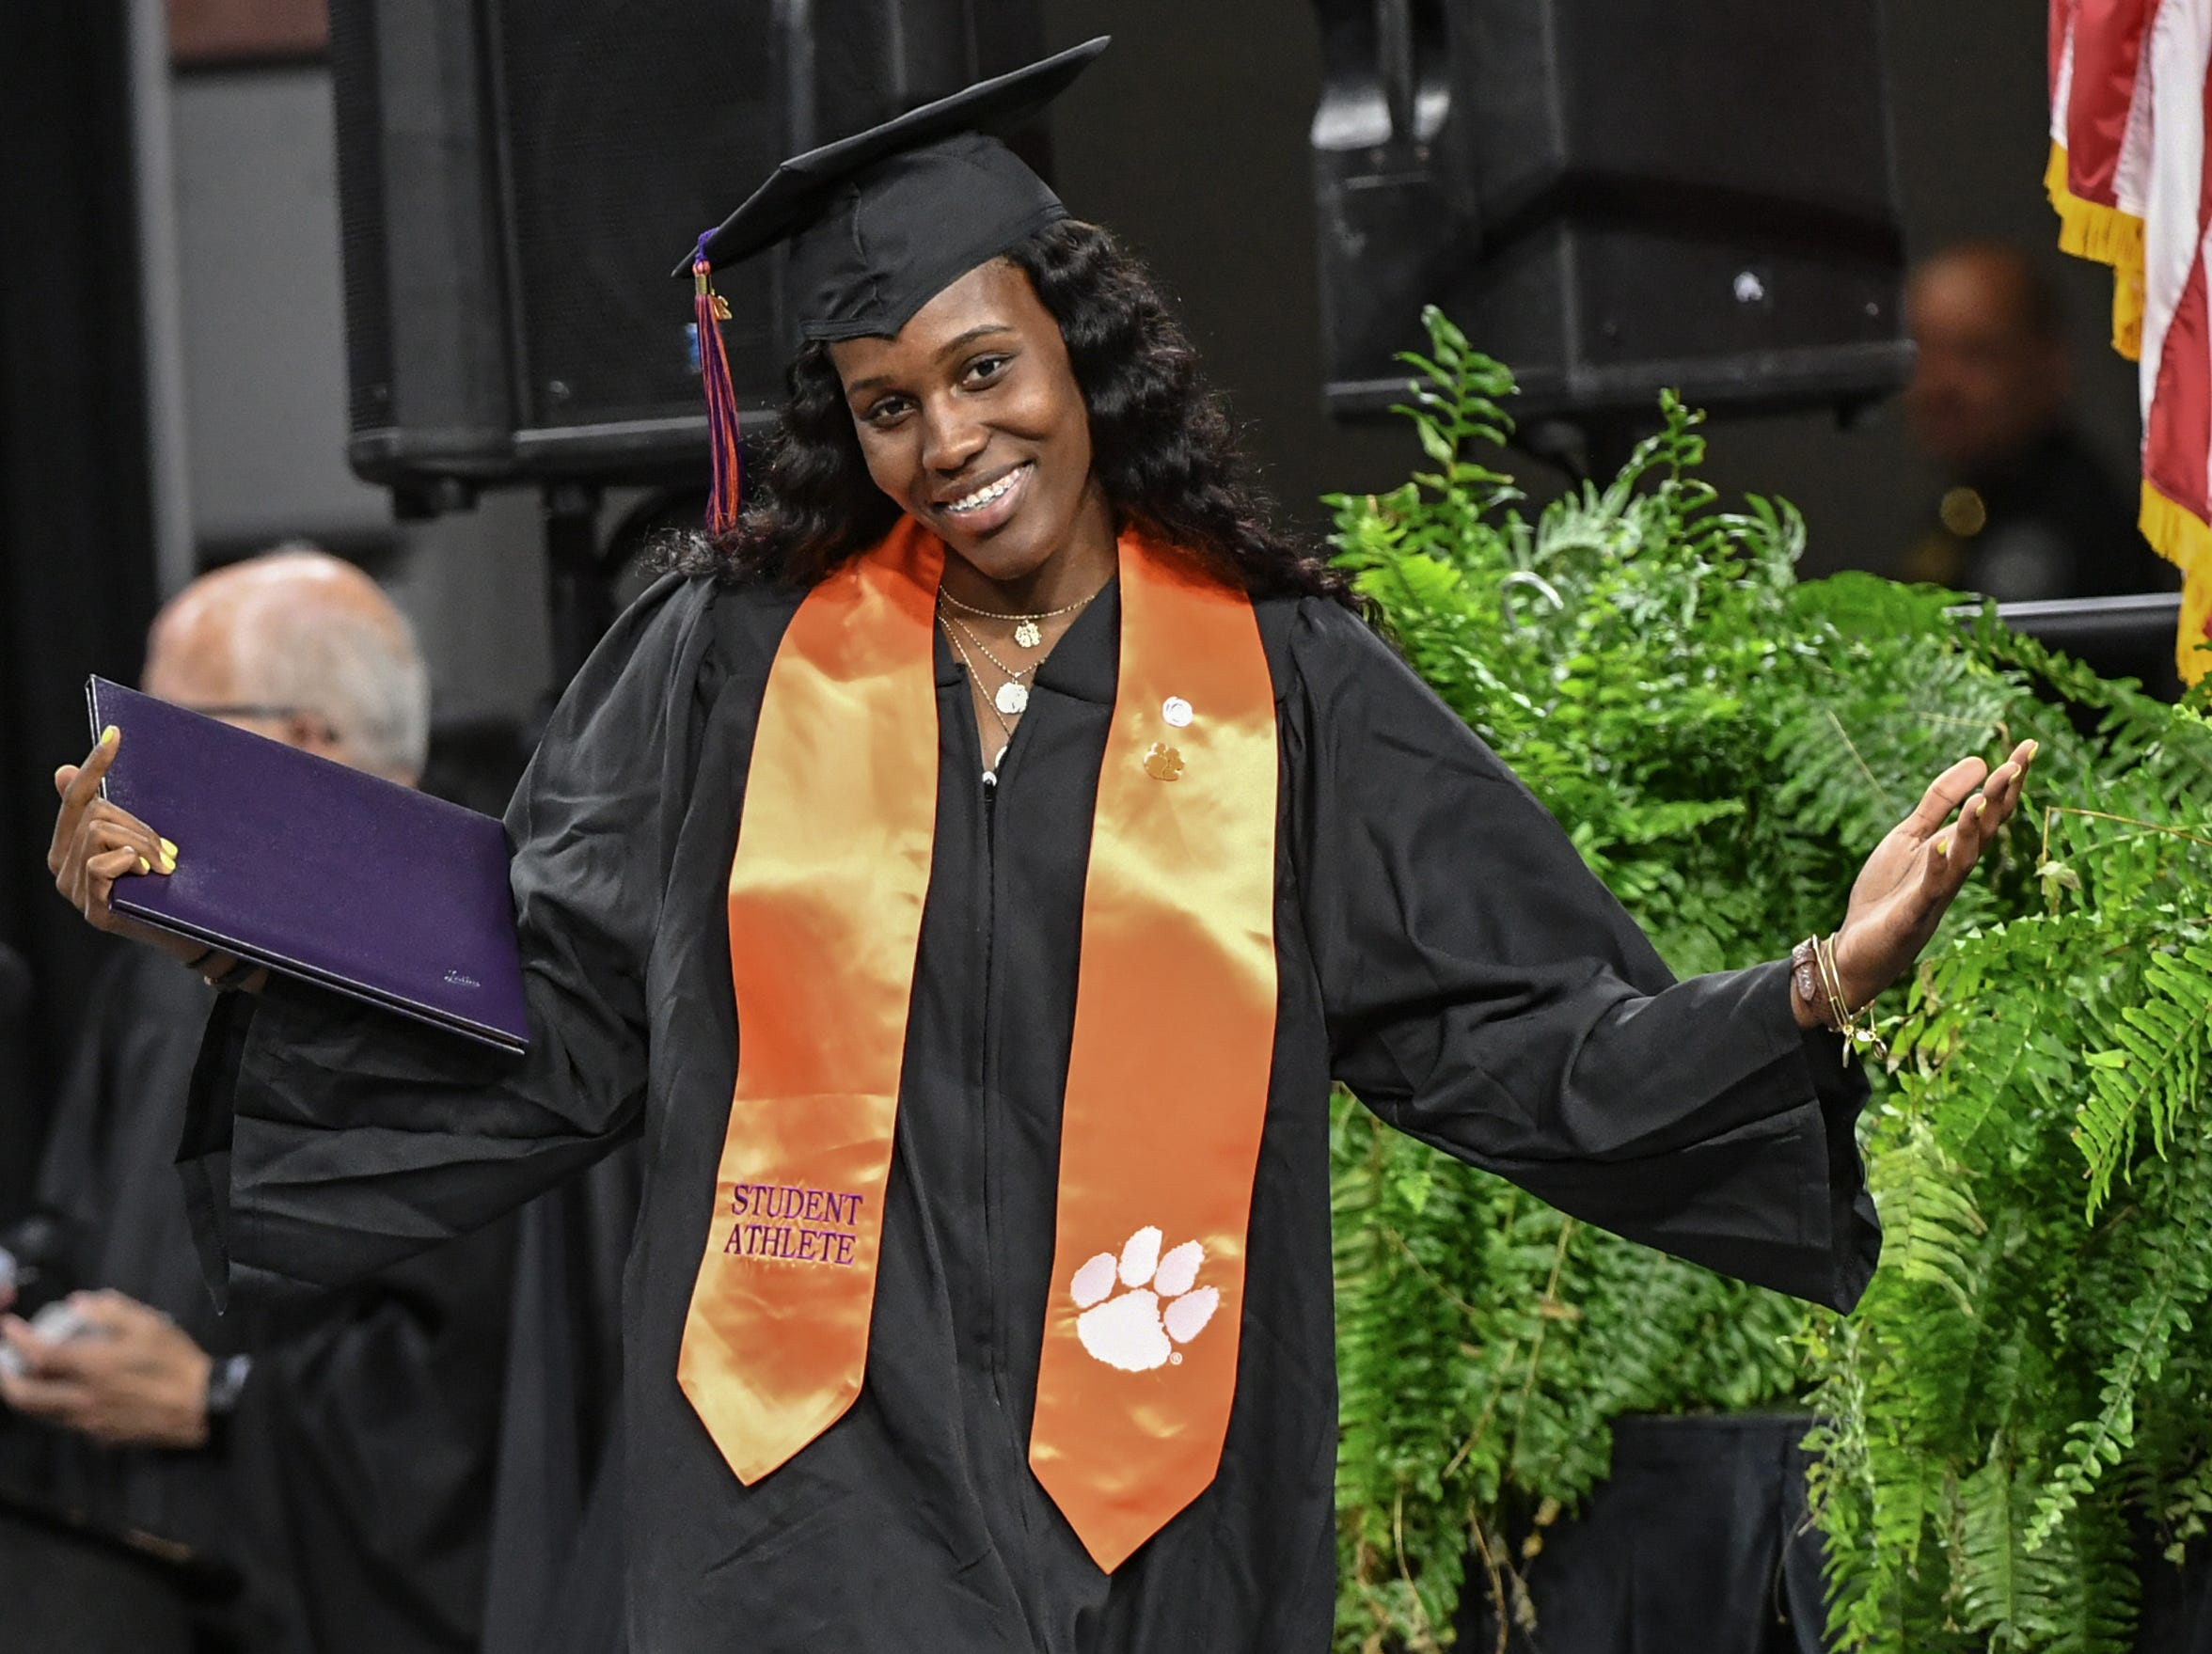 Aliyah Collier, former women's basketball, reacts after getting a bachelor of science in parks, recreation, tourism, management during Clemson University commencement ceremonies in Littlejohn Coliseum in Clemson Friday, May 10, 2019.